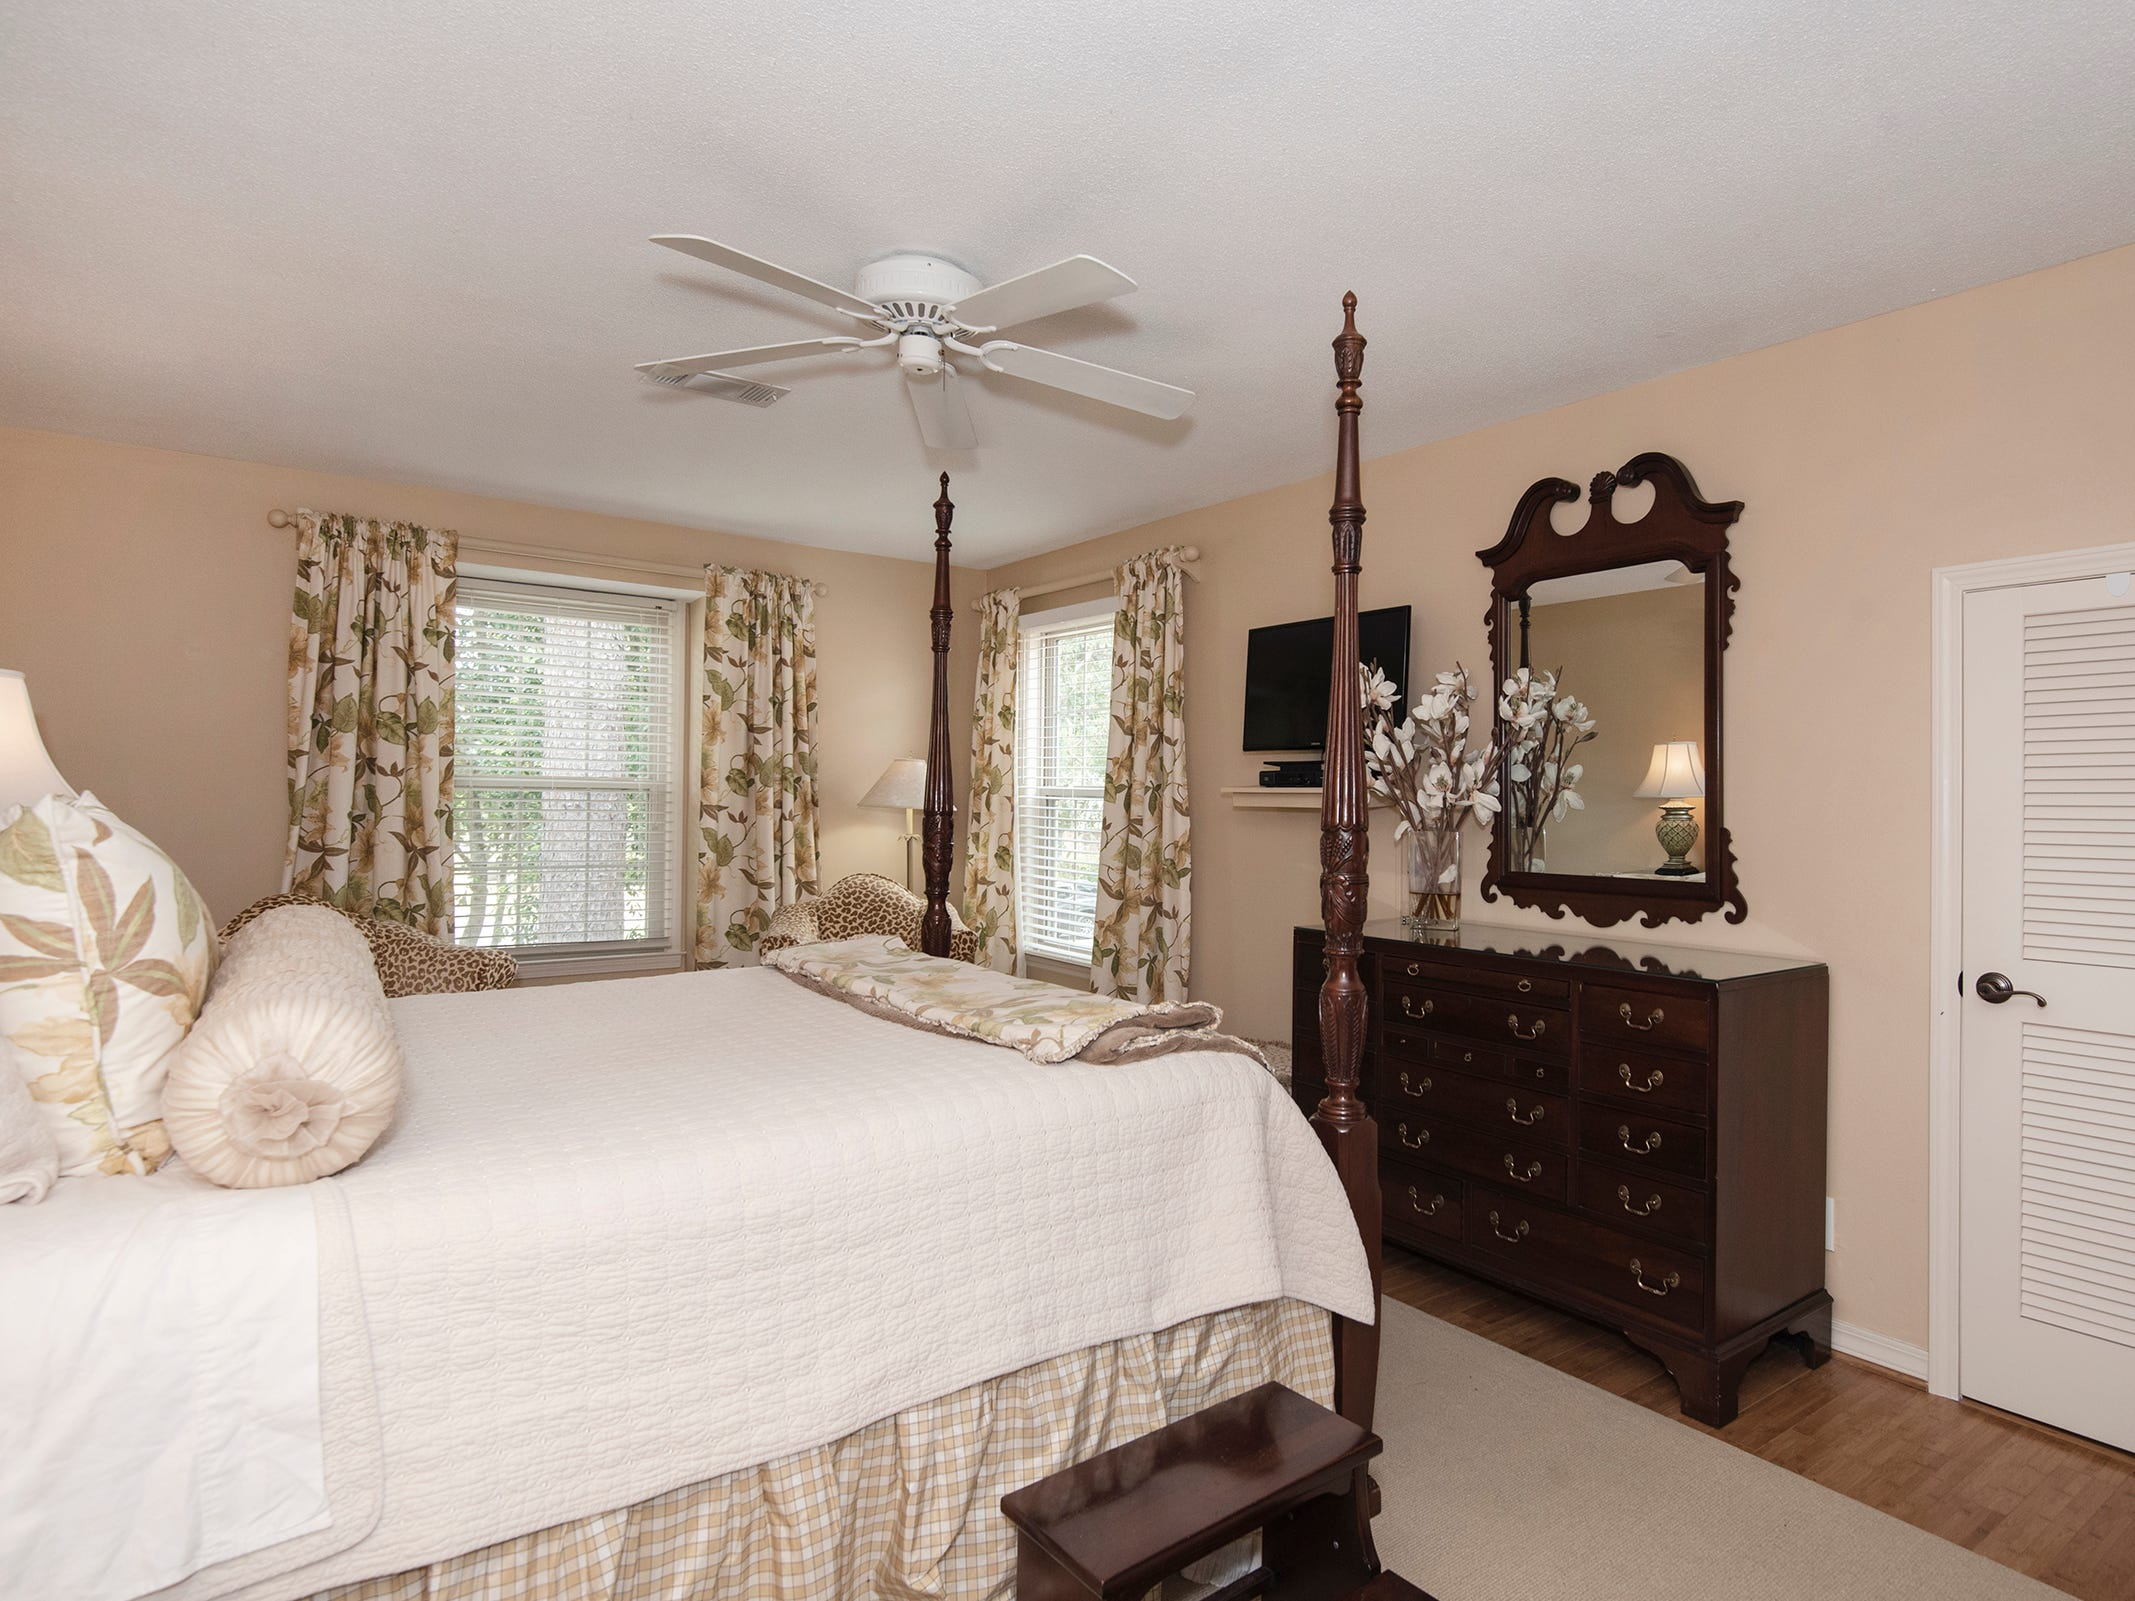 2625 Tambridge Circle, the master bedroom.